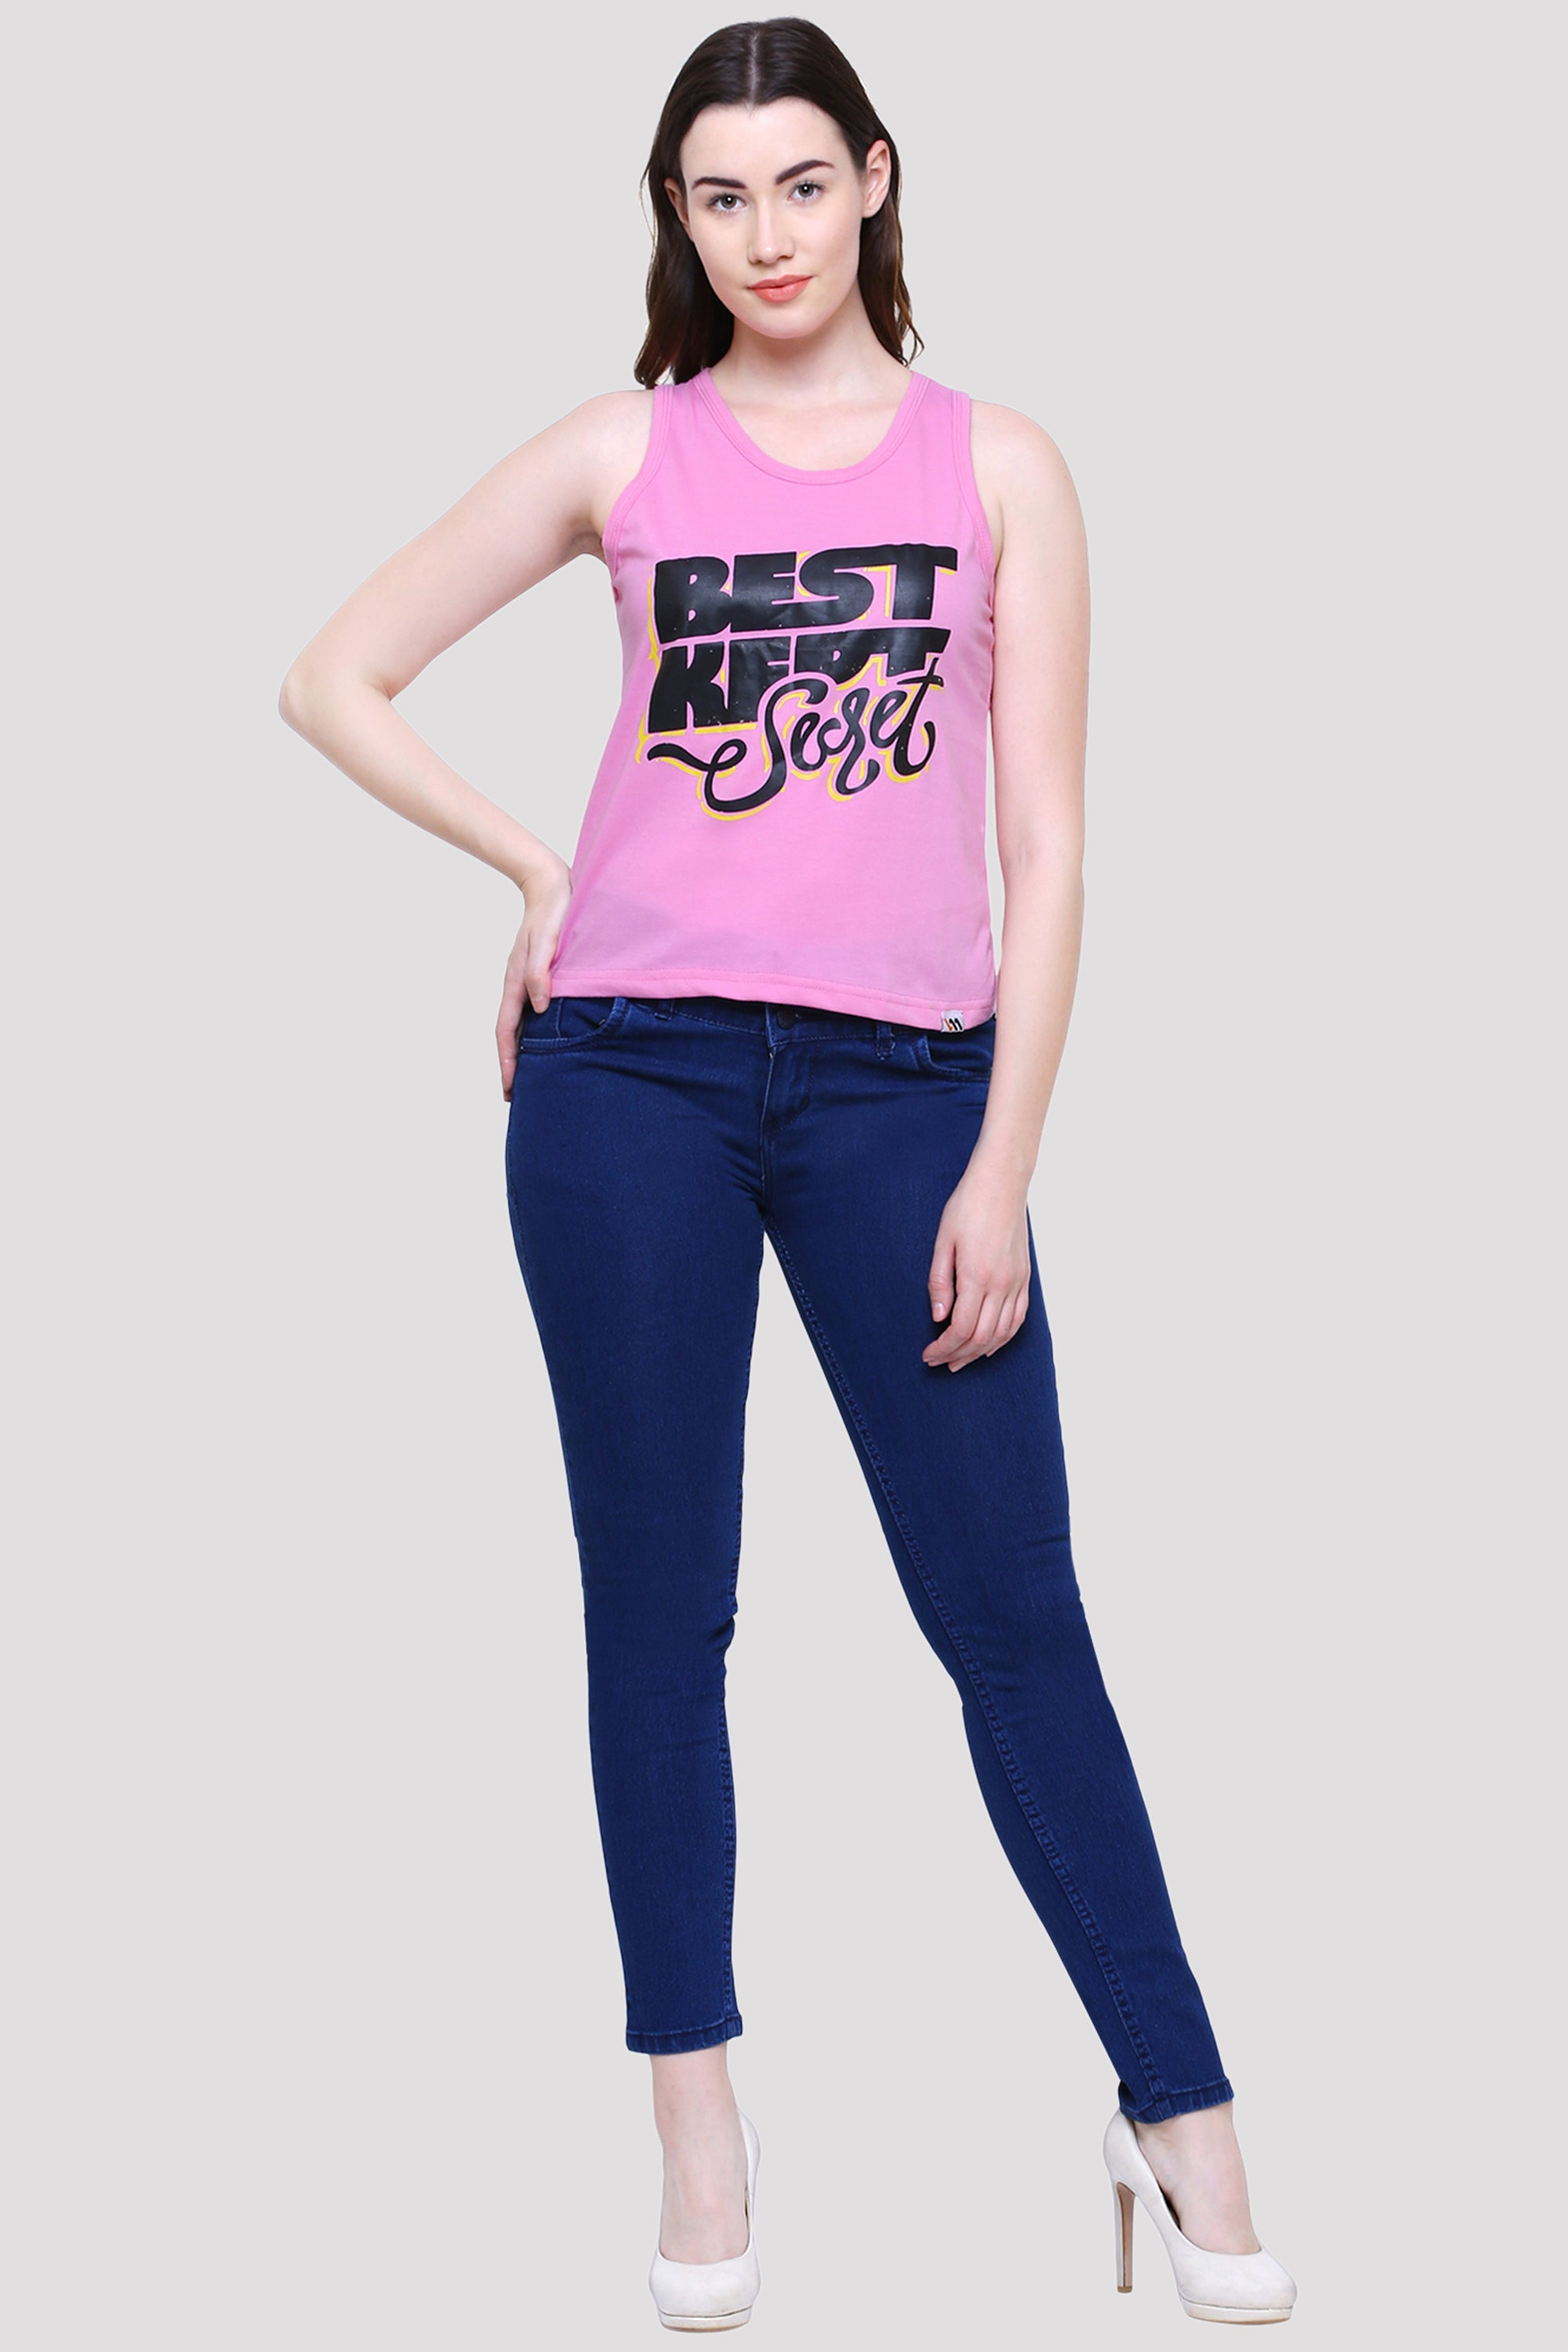 Best Kept Secret Pink Tank Top for Women